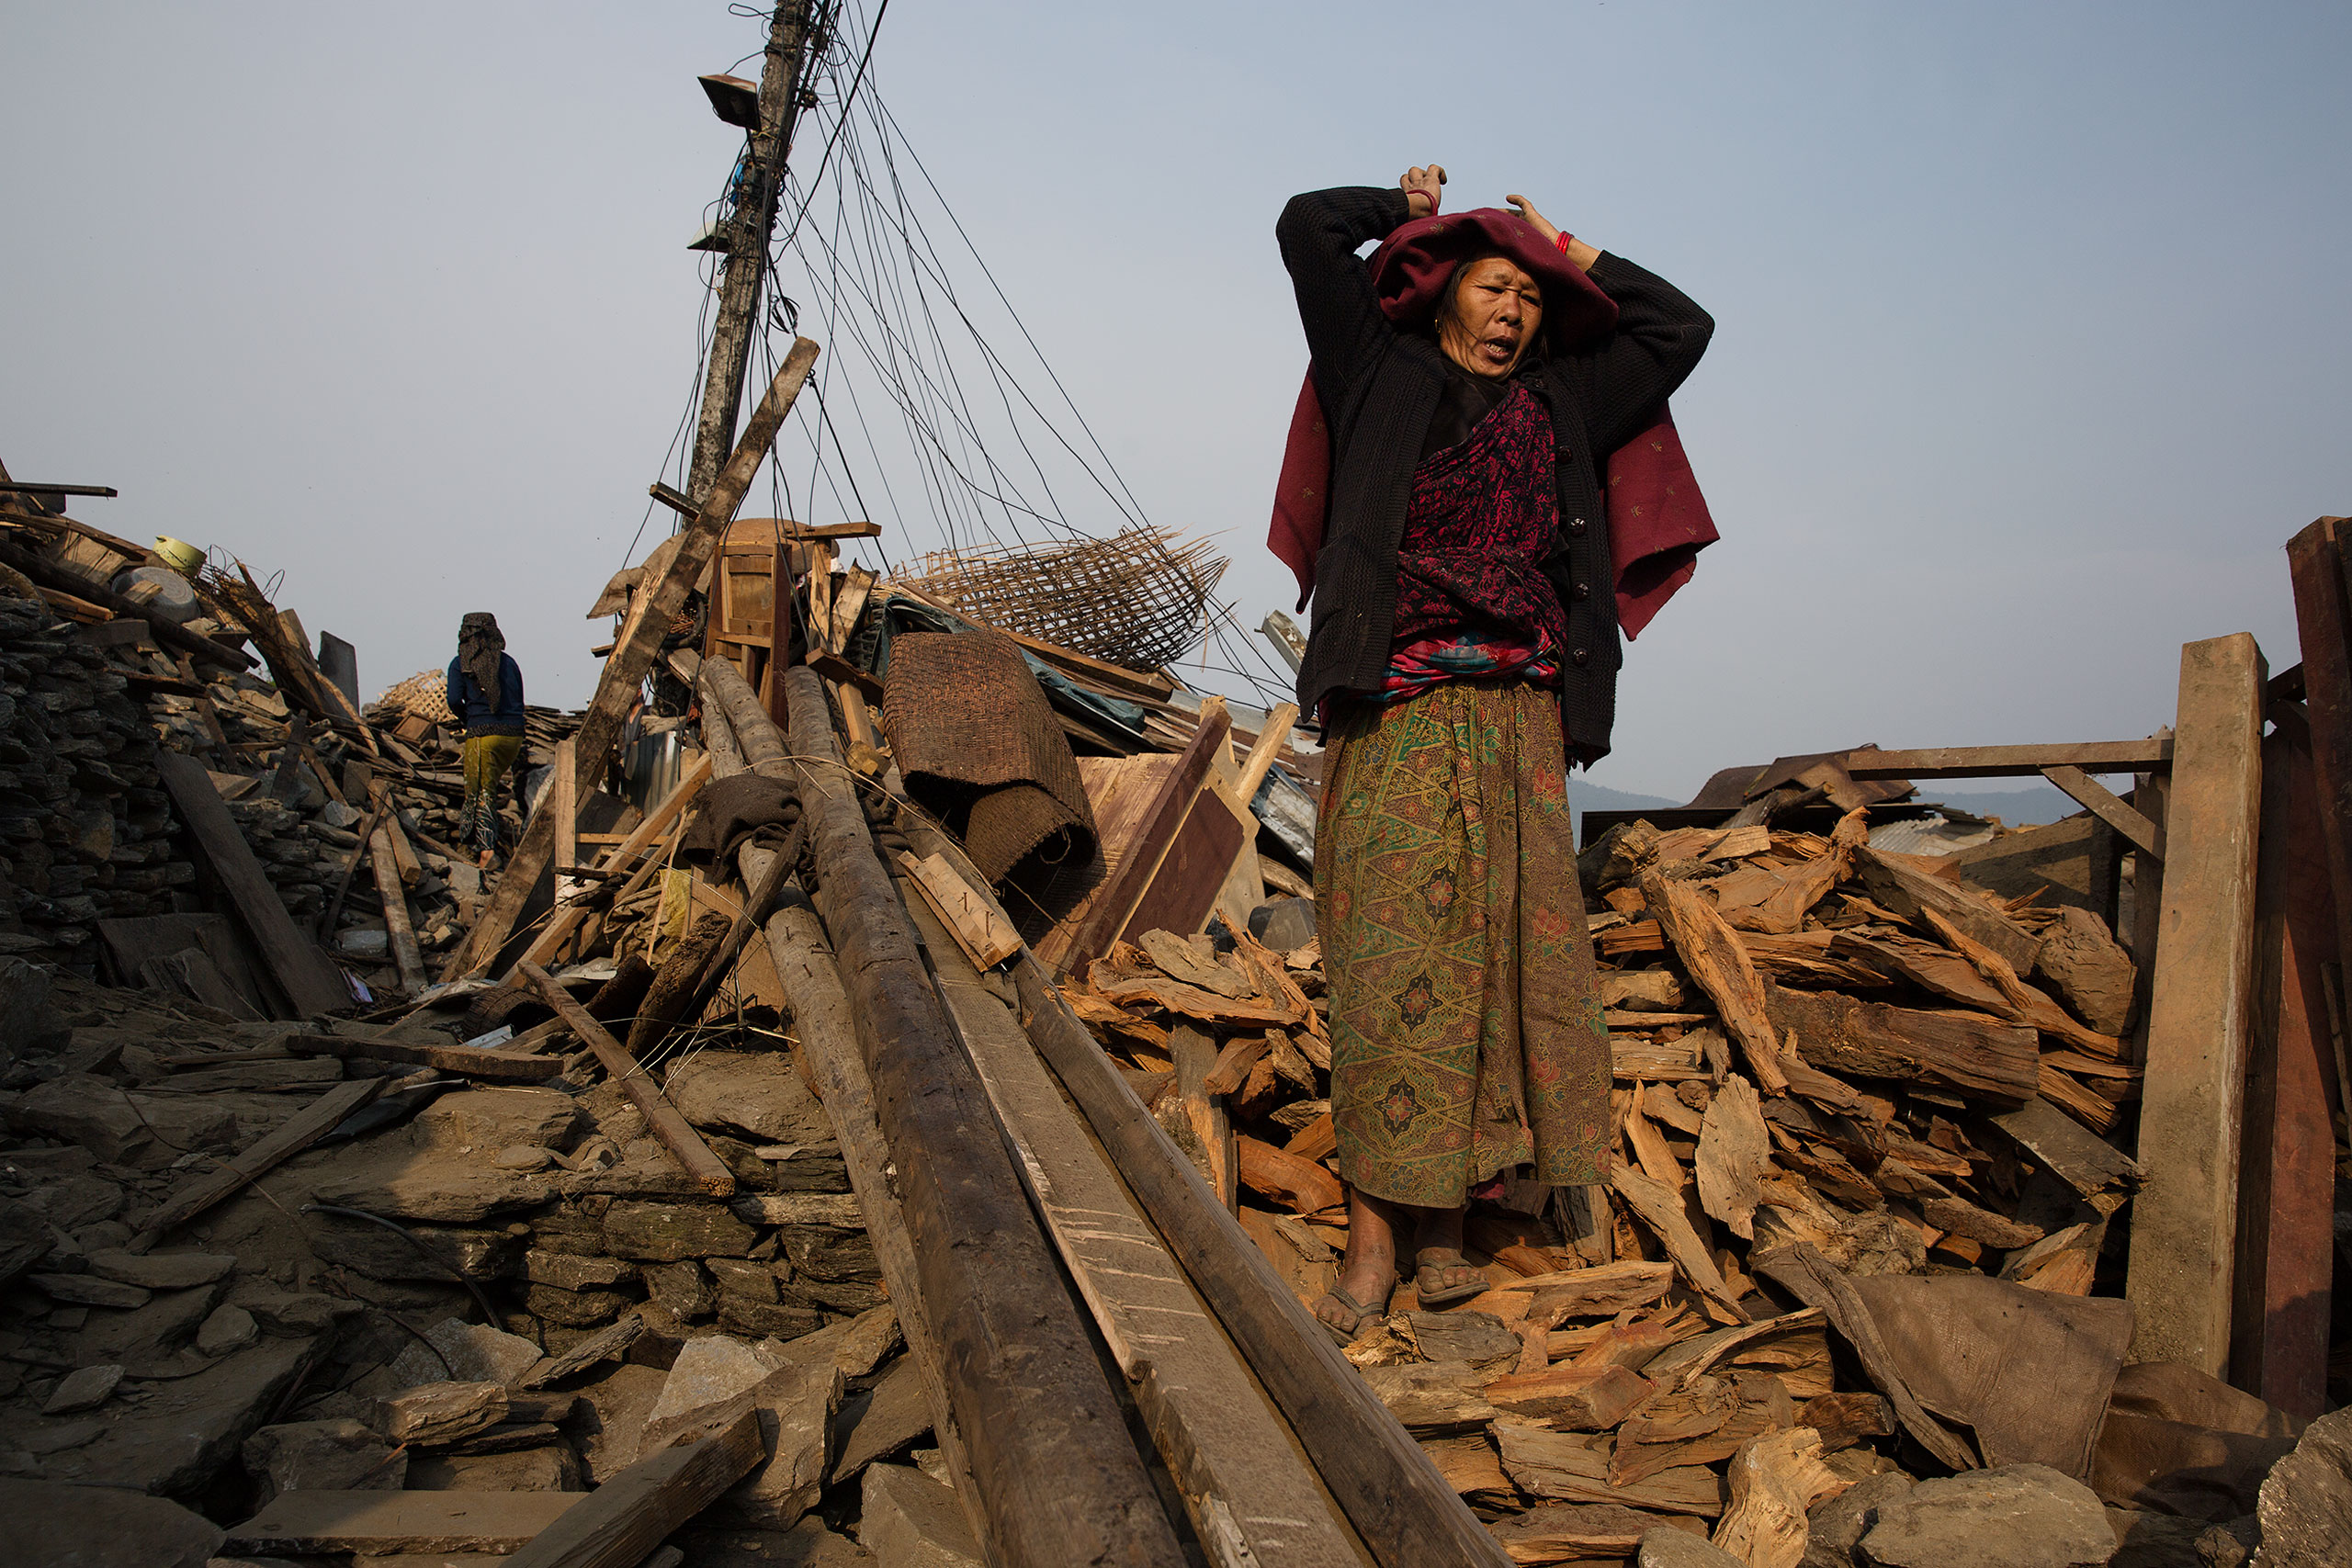 A woman stands among the wreckage in Barpak, Nepal, May 6, 2015.